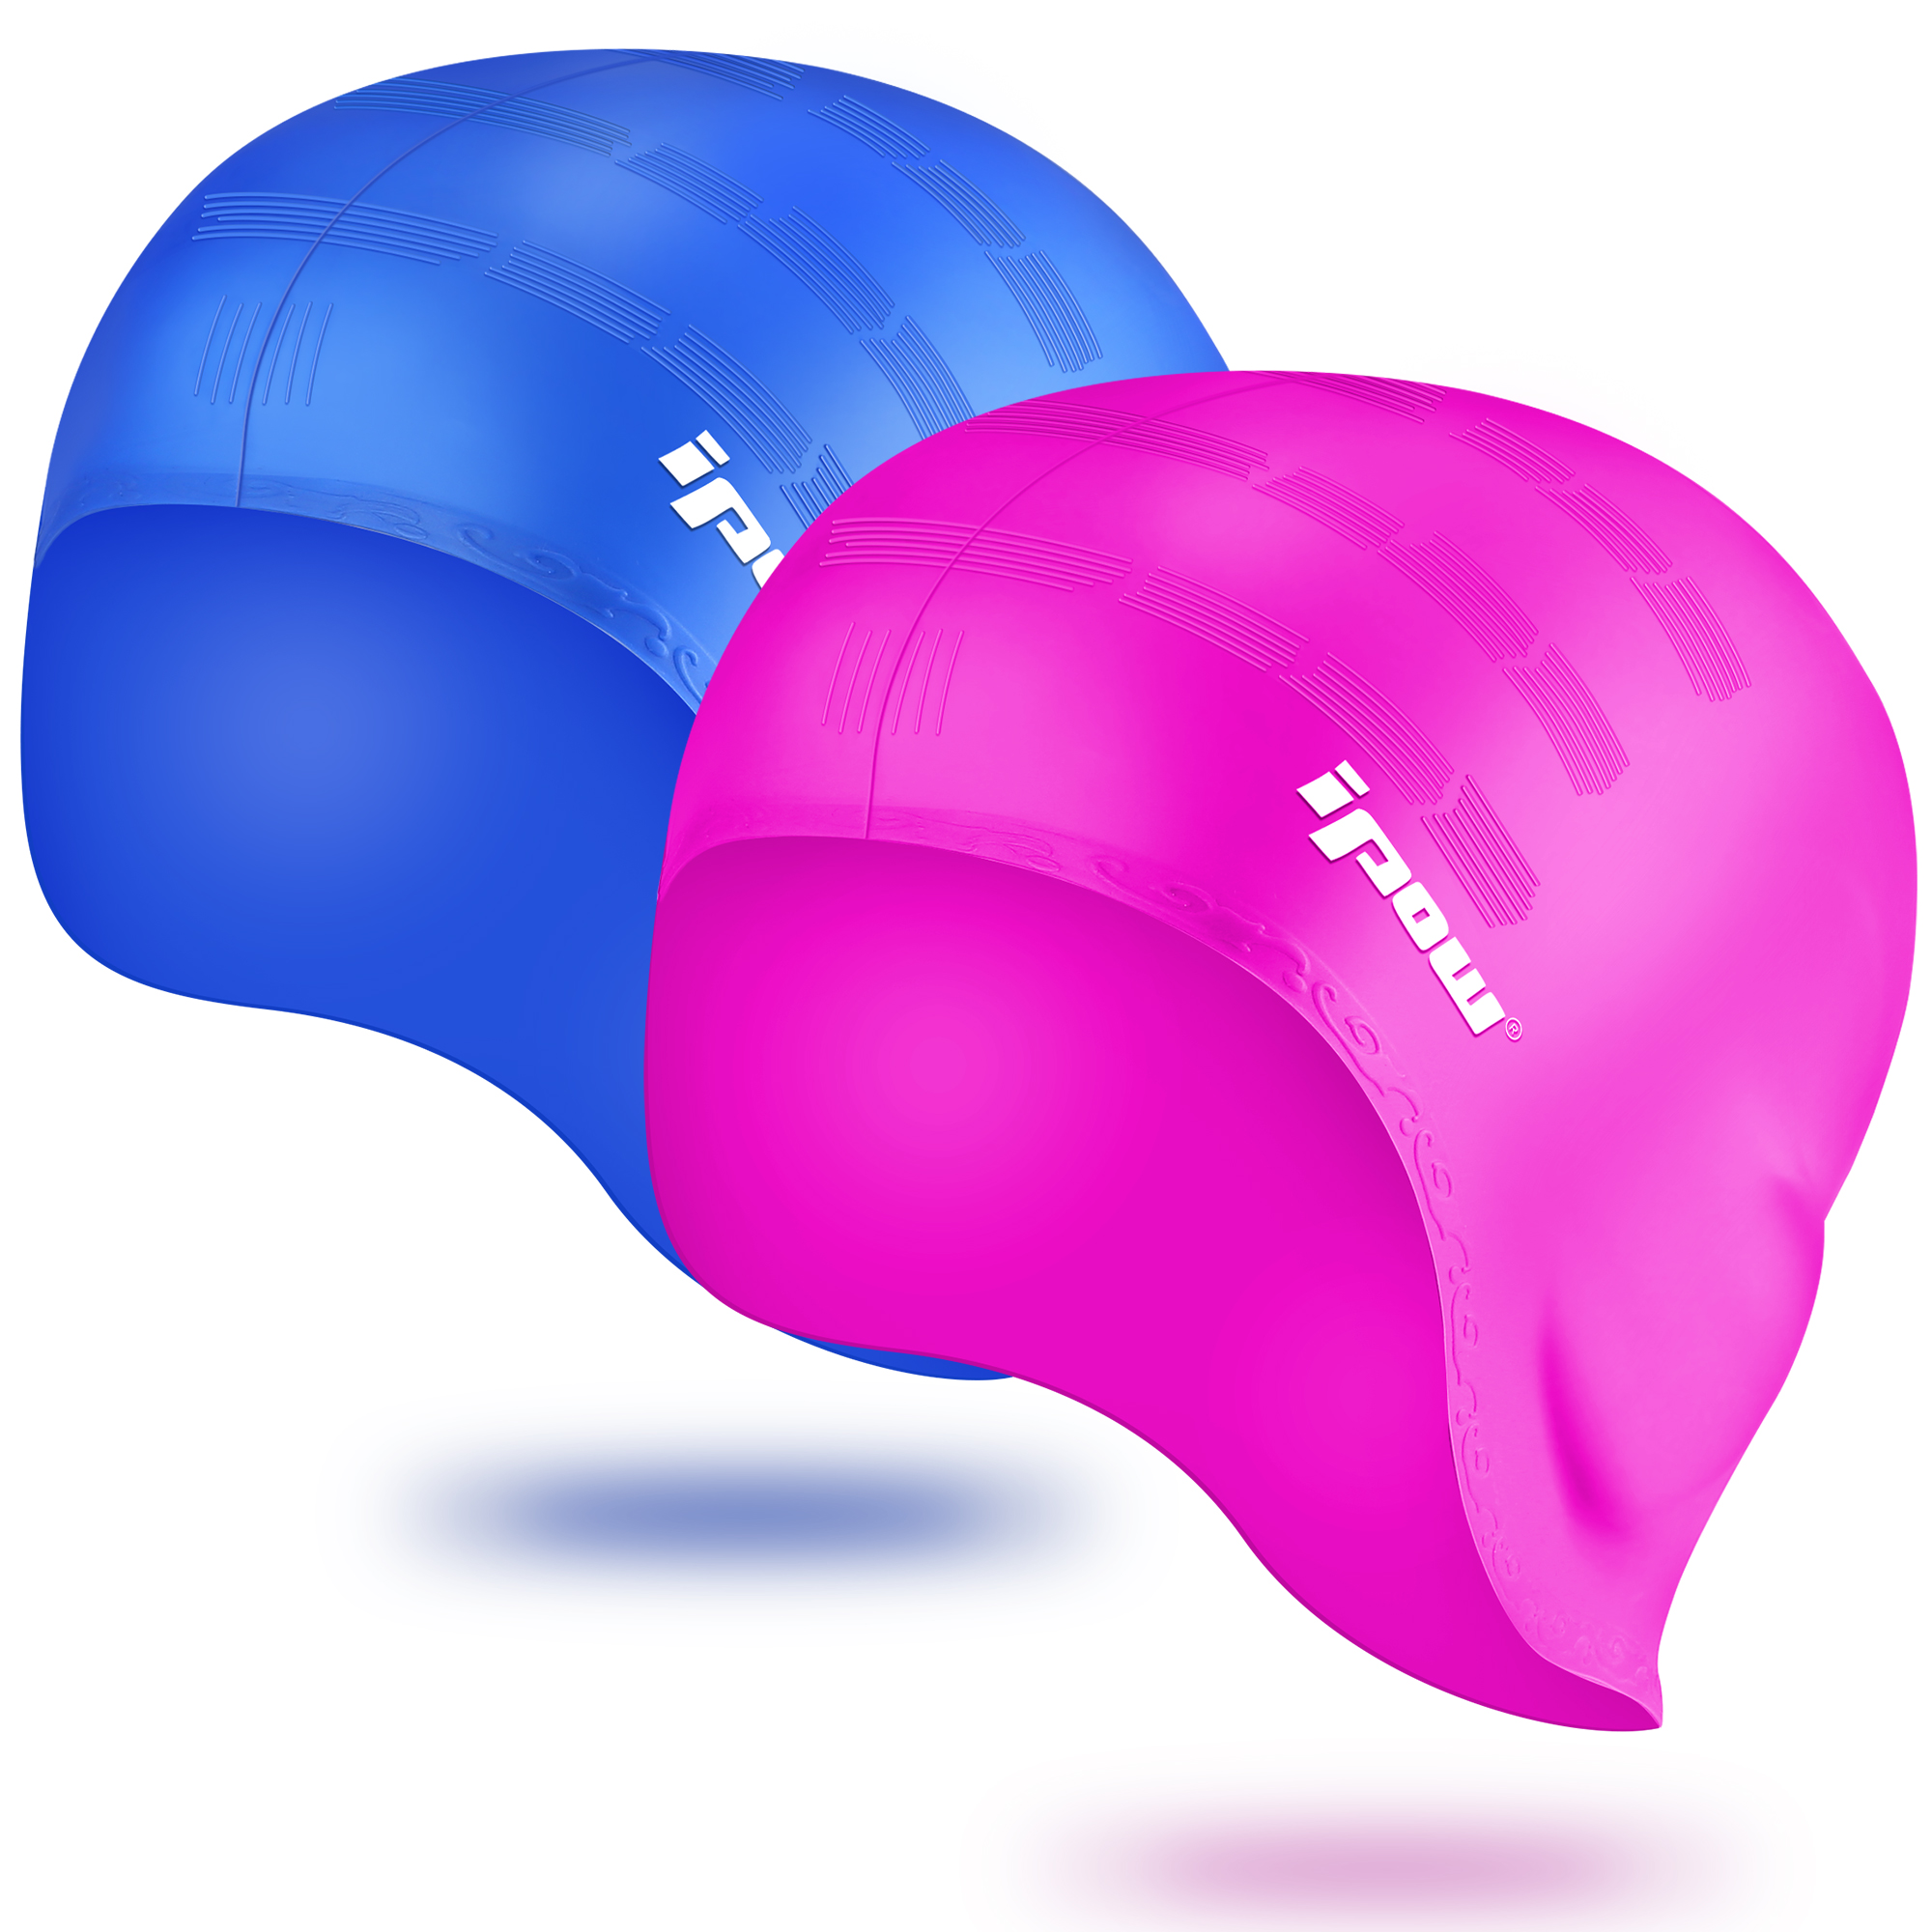 IPOW Silicone Swim Cap Wrinkle-Free Waterproof Swimming Caps Soft Ear Protective Hat for Men Women Kids Children Youth Casual Use, Competition & Training,2 Pack